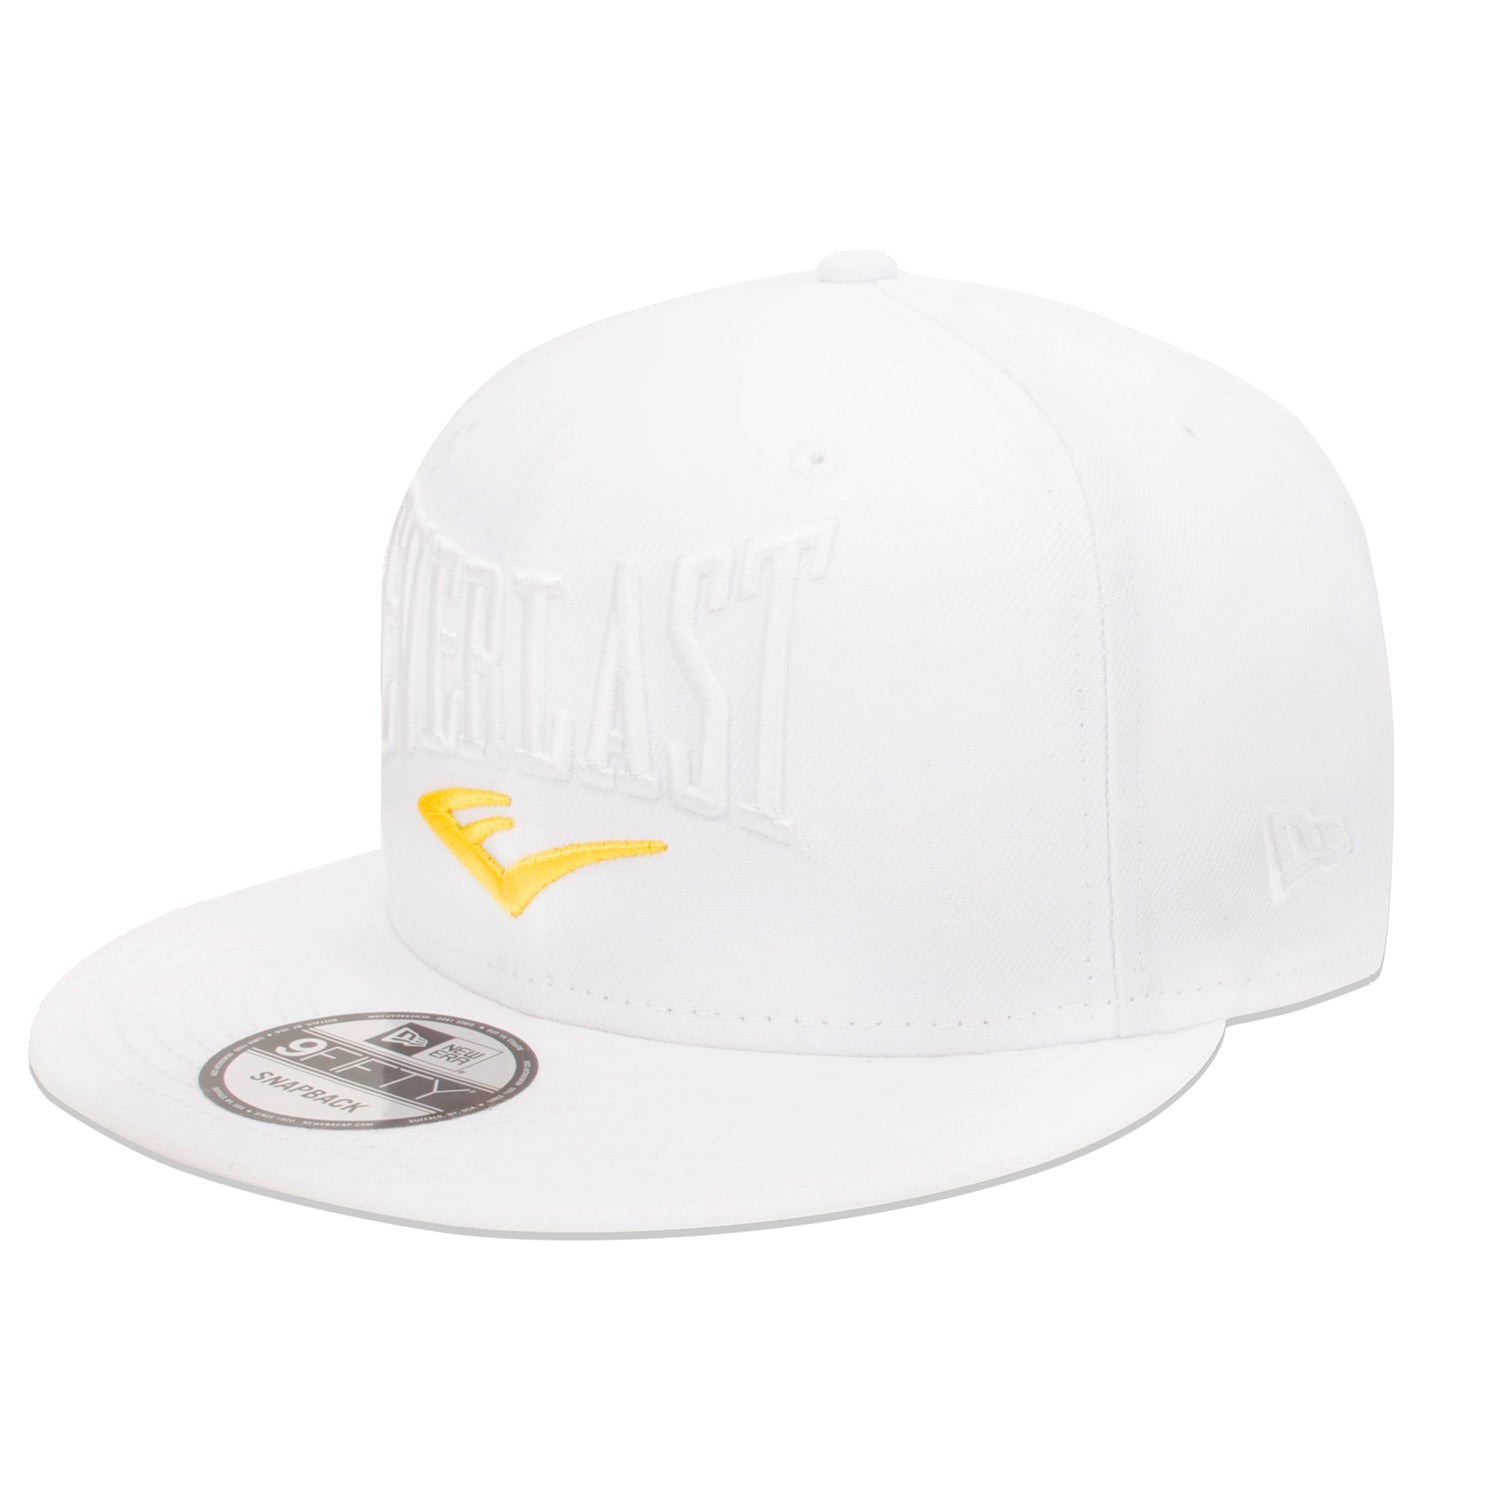 Everlast New Era 9FIFTY White Snapback Logo Cap – Everlast Canada 3859ac913711